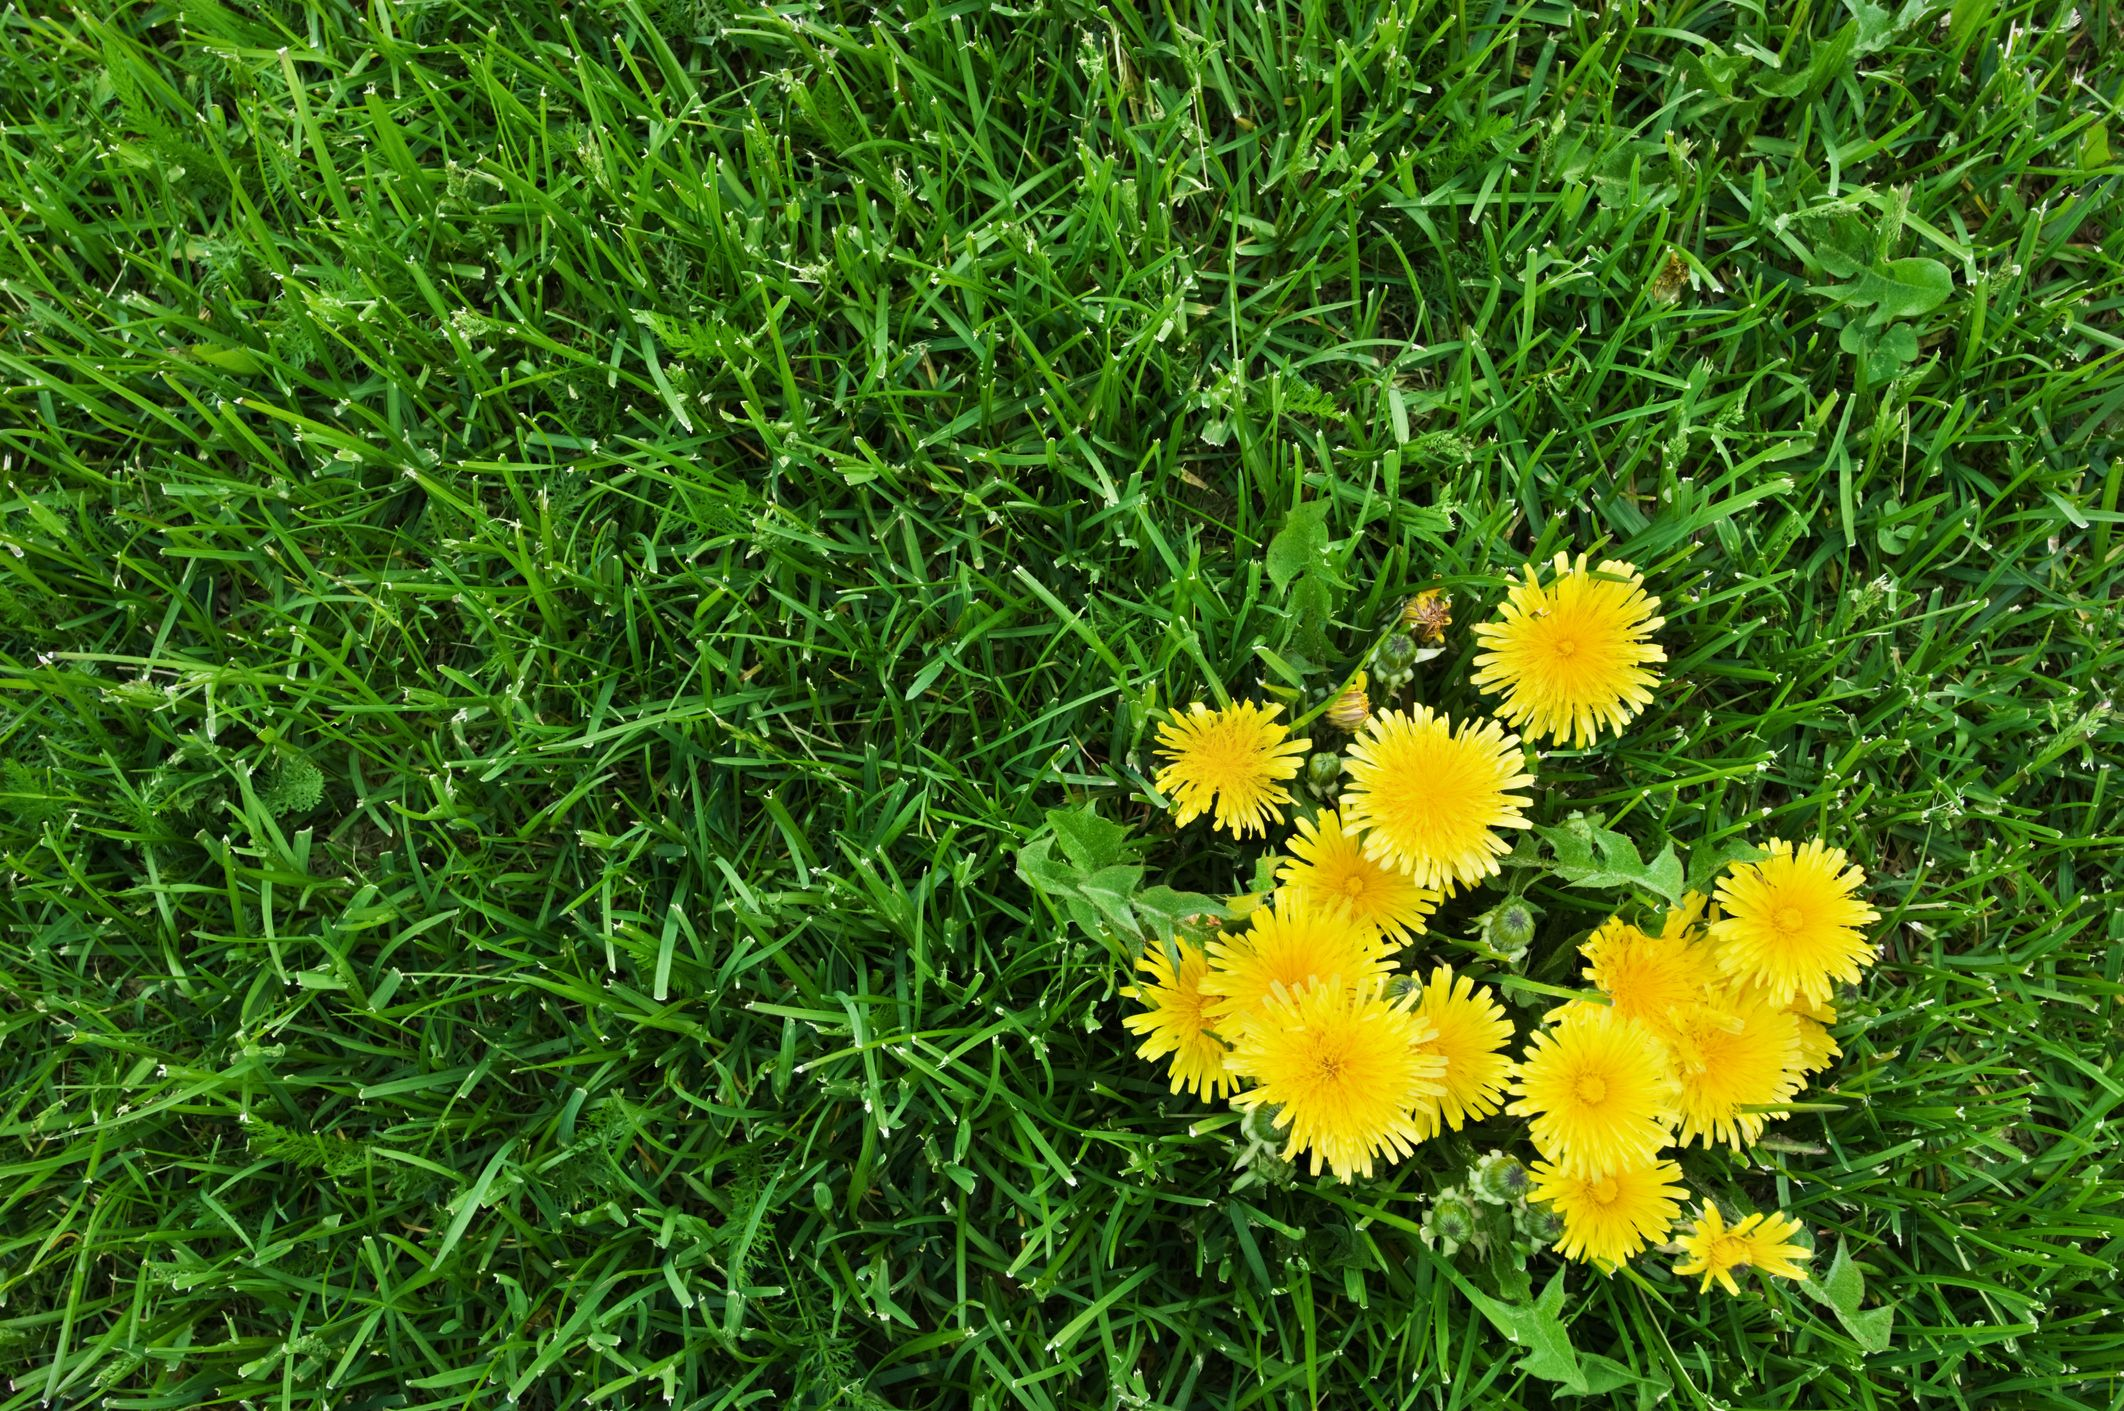 How to Finally Get Rid of Dandelions